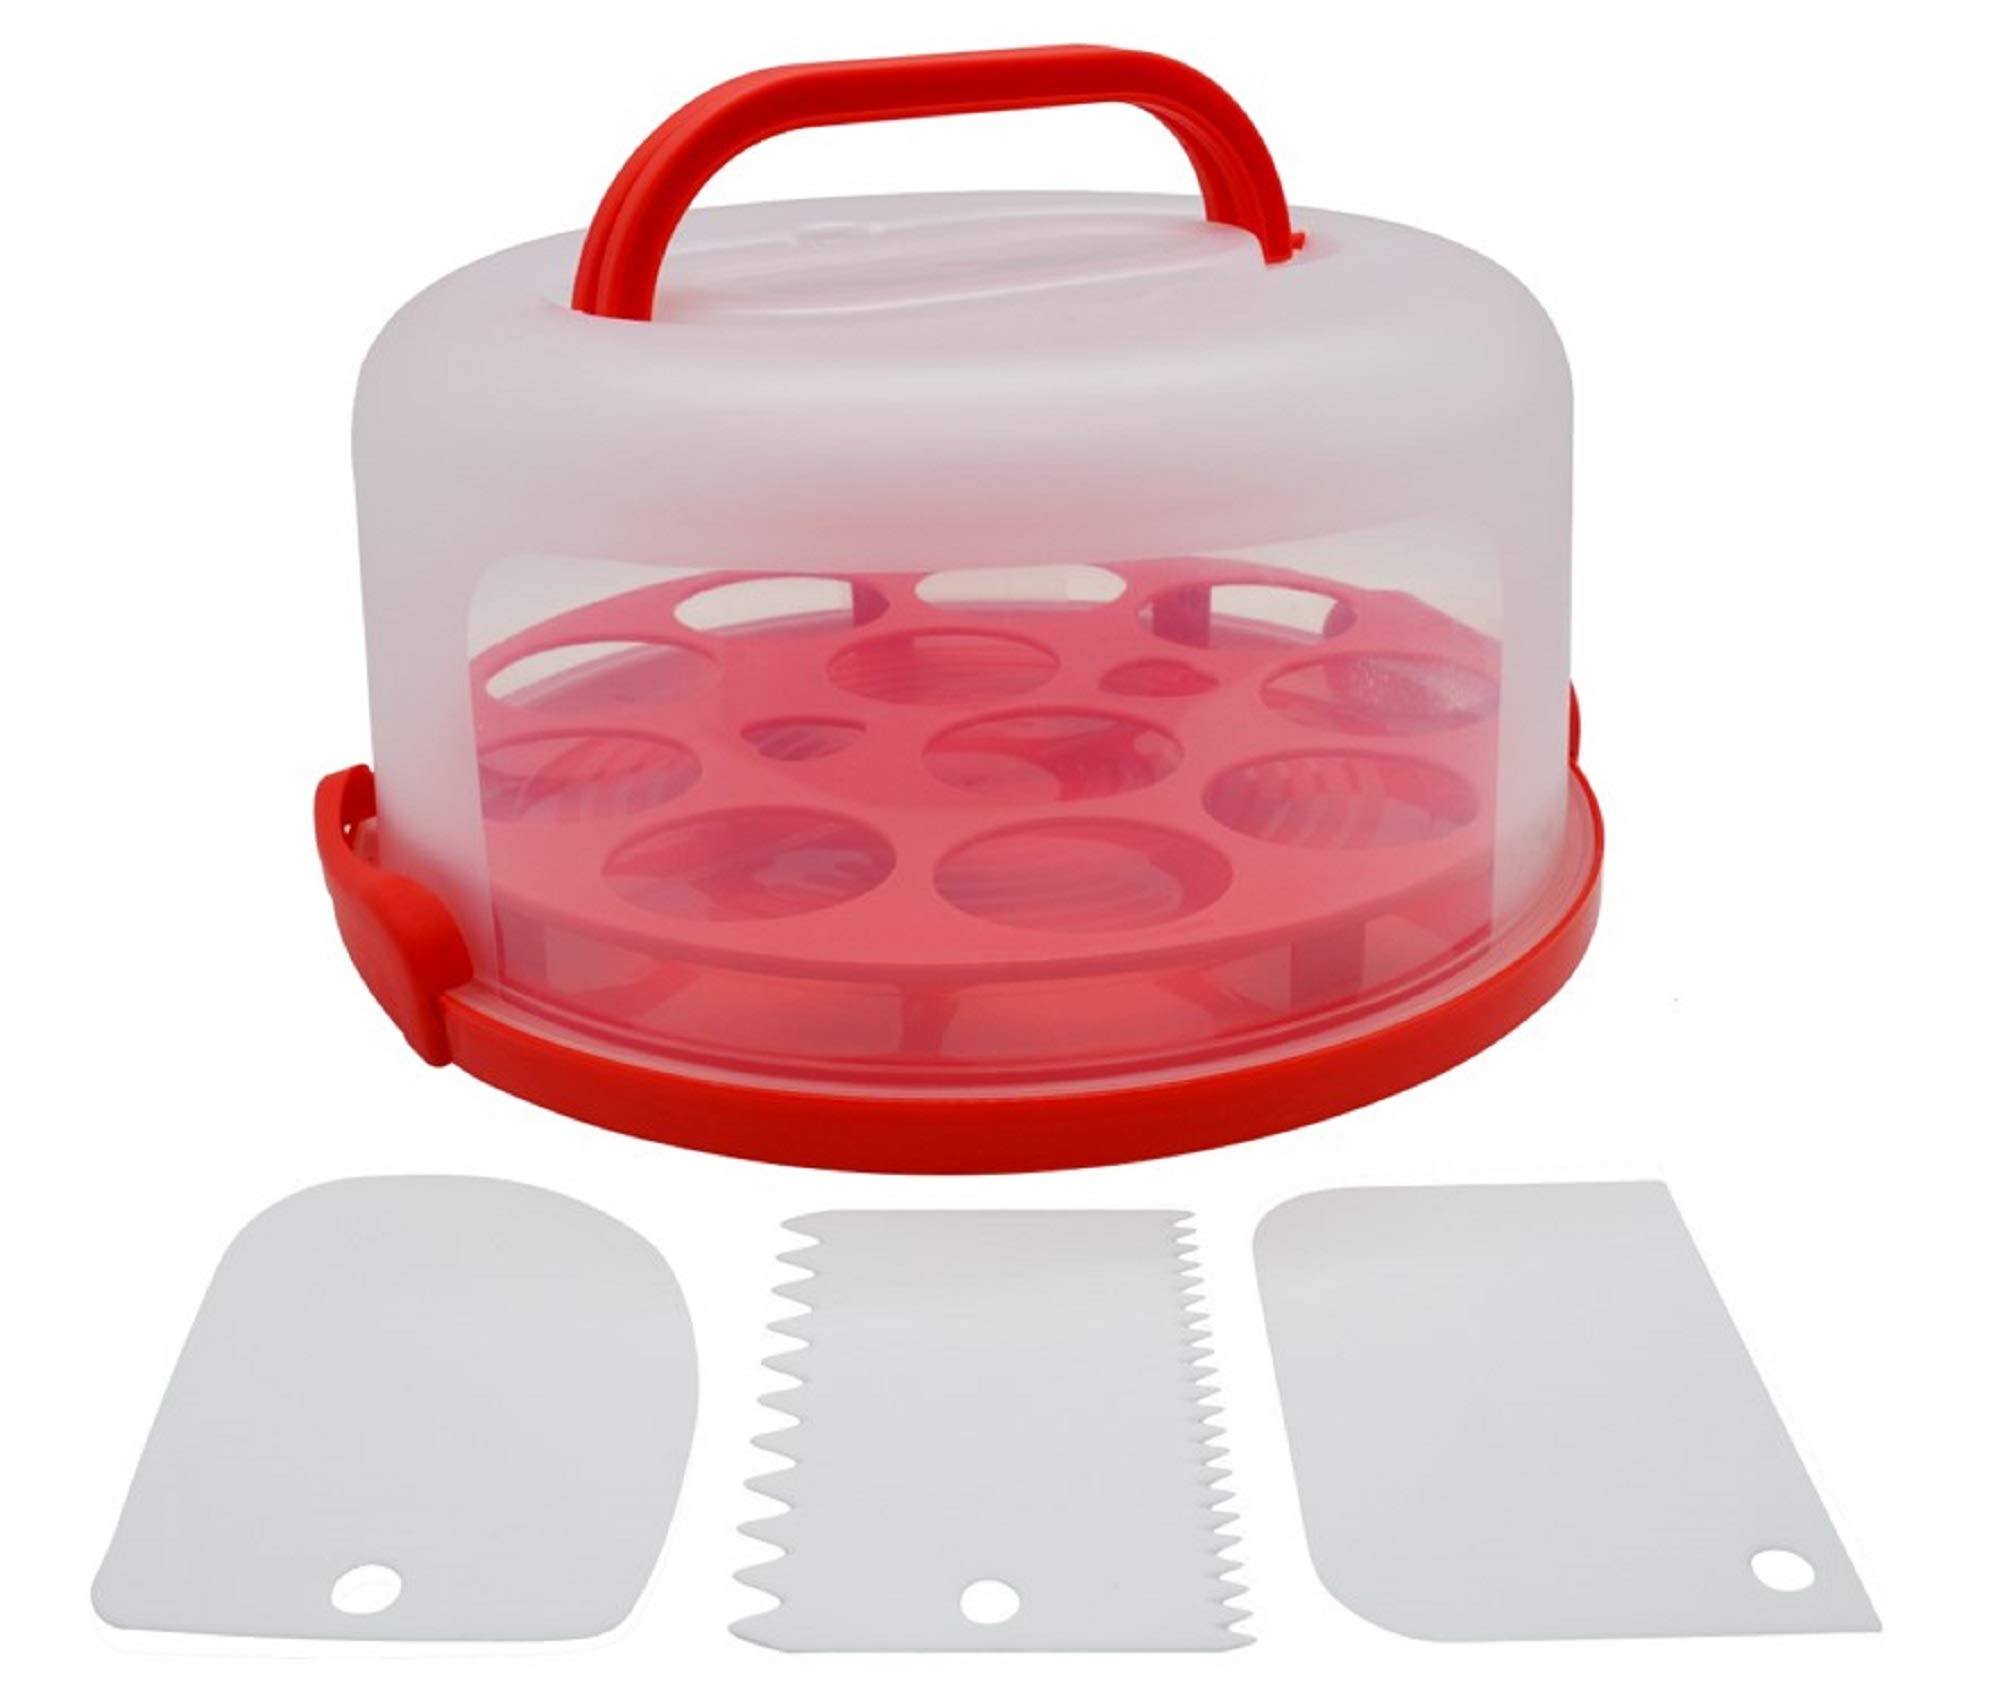 Cynergee Round Portable Cake, Pie, Cupcake, Muffin Carrier with Locking Lid and Collapsible Handles, Includes 3 Piece Cake Scraper and Icing Smoother Set, Red by Cynergee